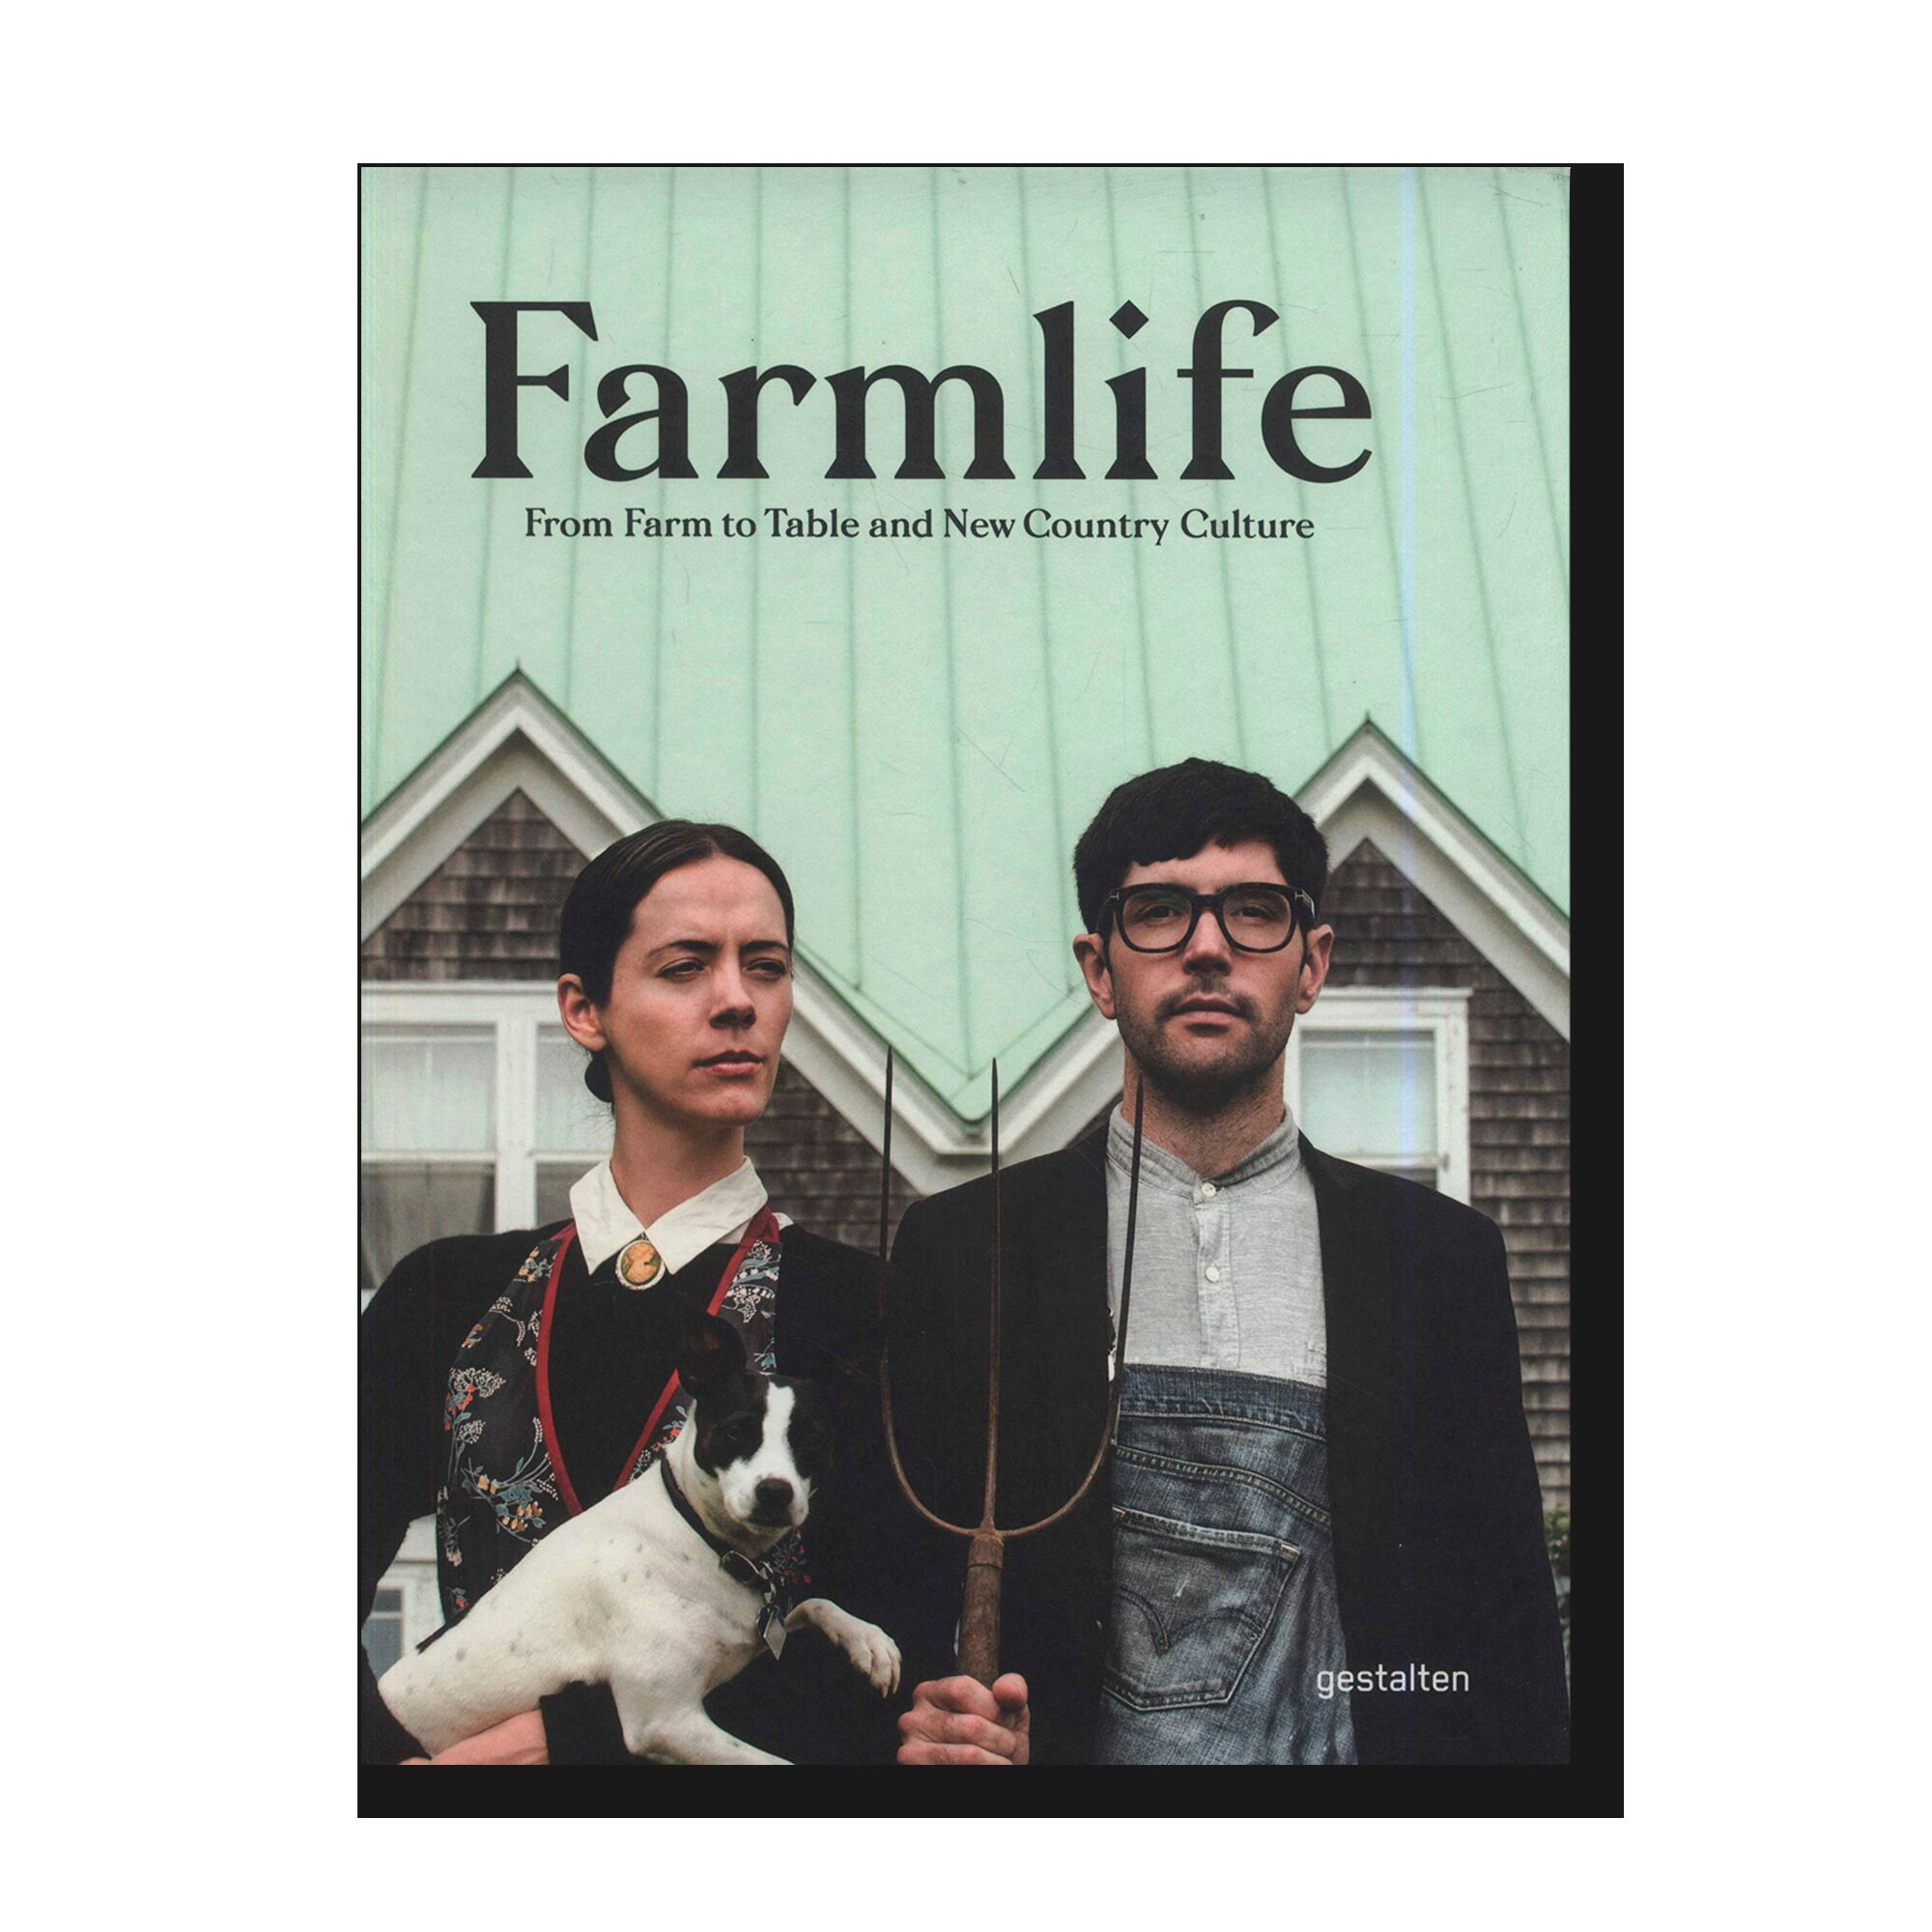 Farmlife: From Farm to Table and New Country Culture